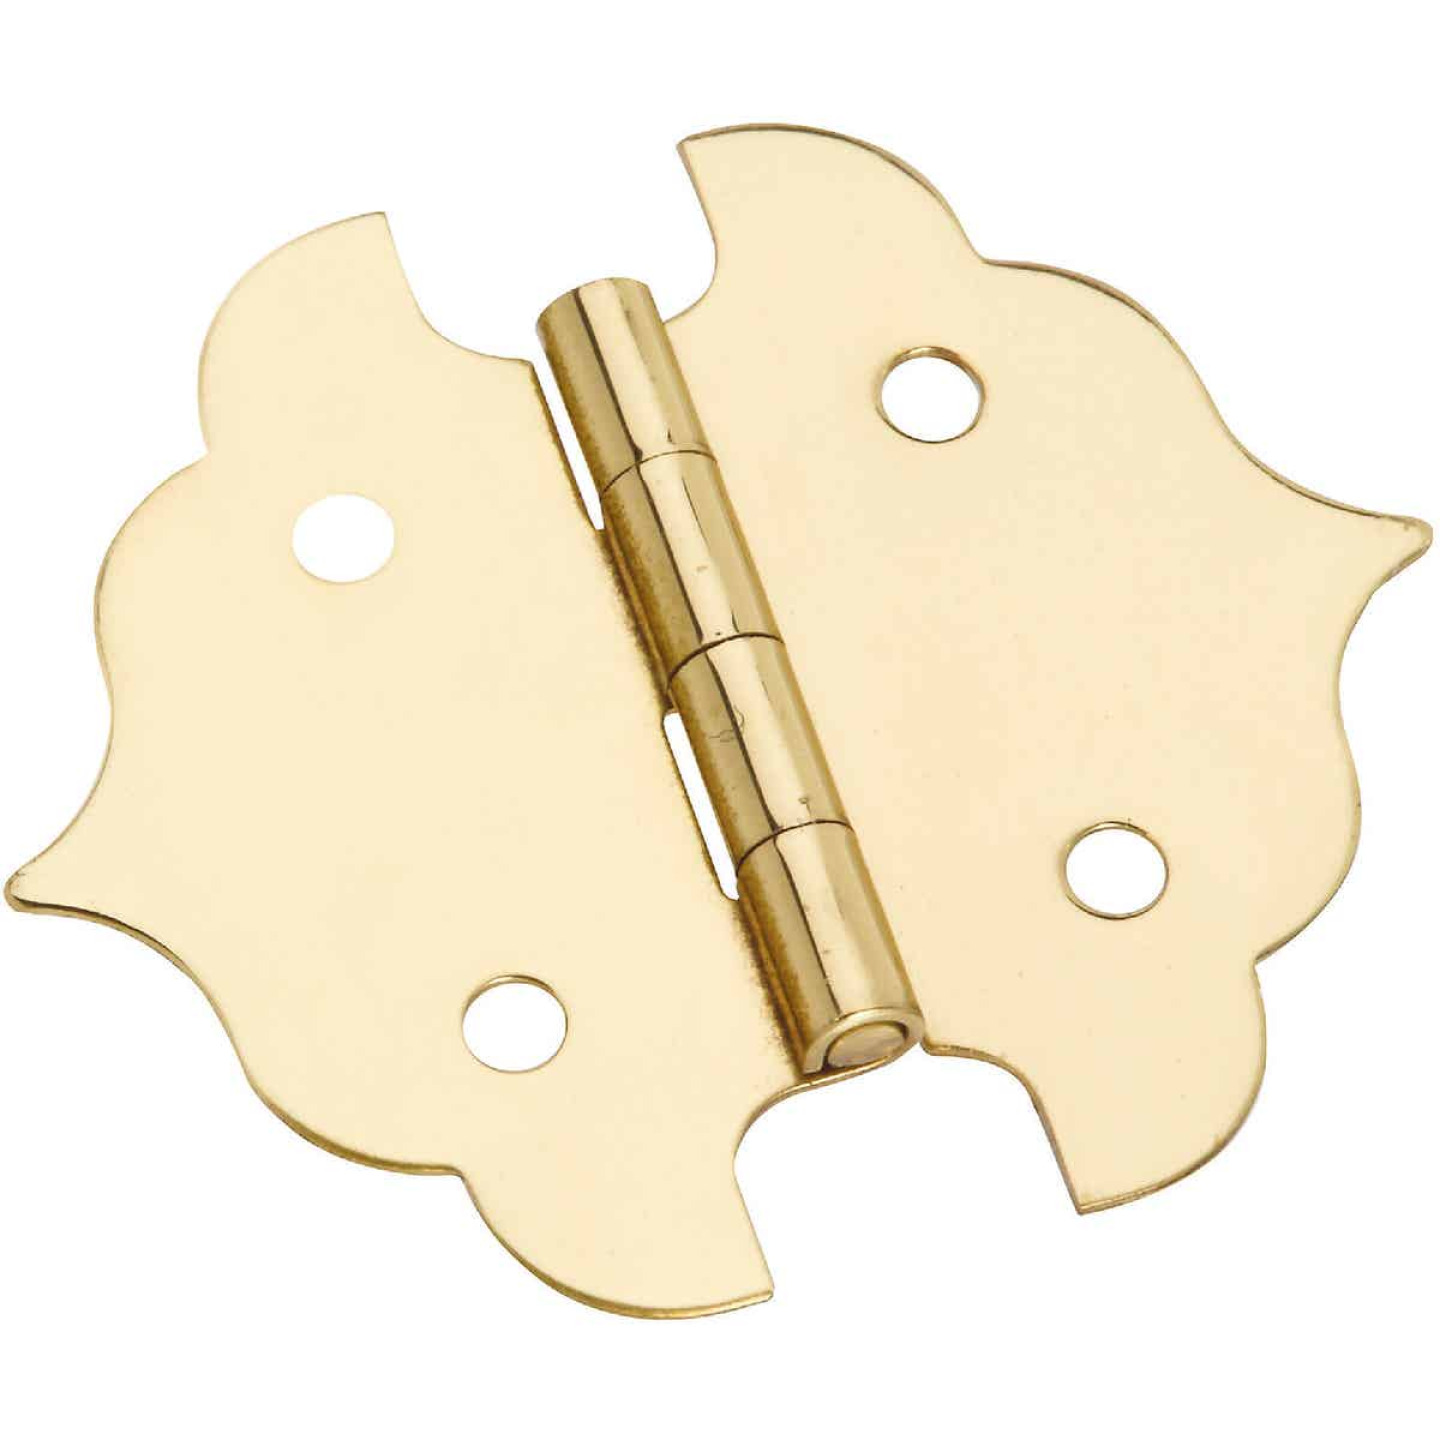 National 1-1/8 In. Antique Brass Decorative Hinge (2-Pack) Image 1